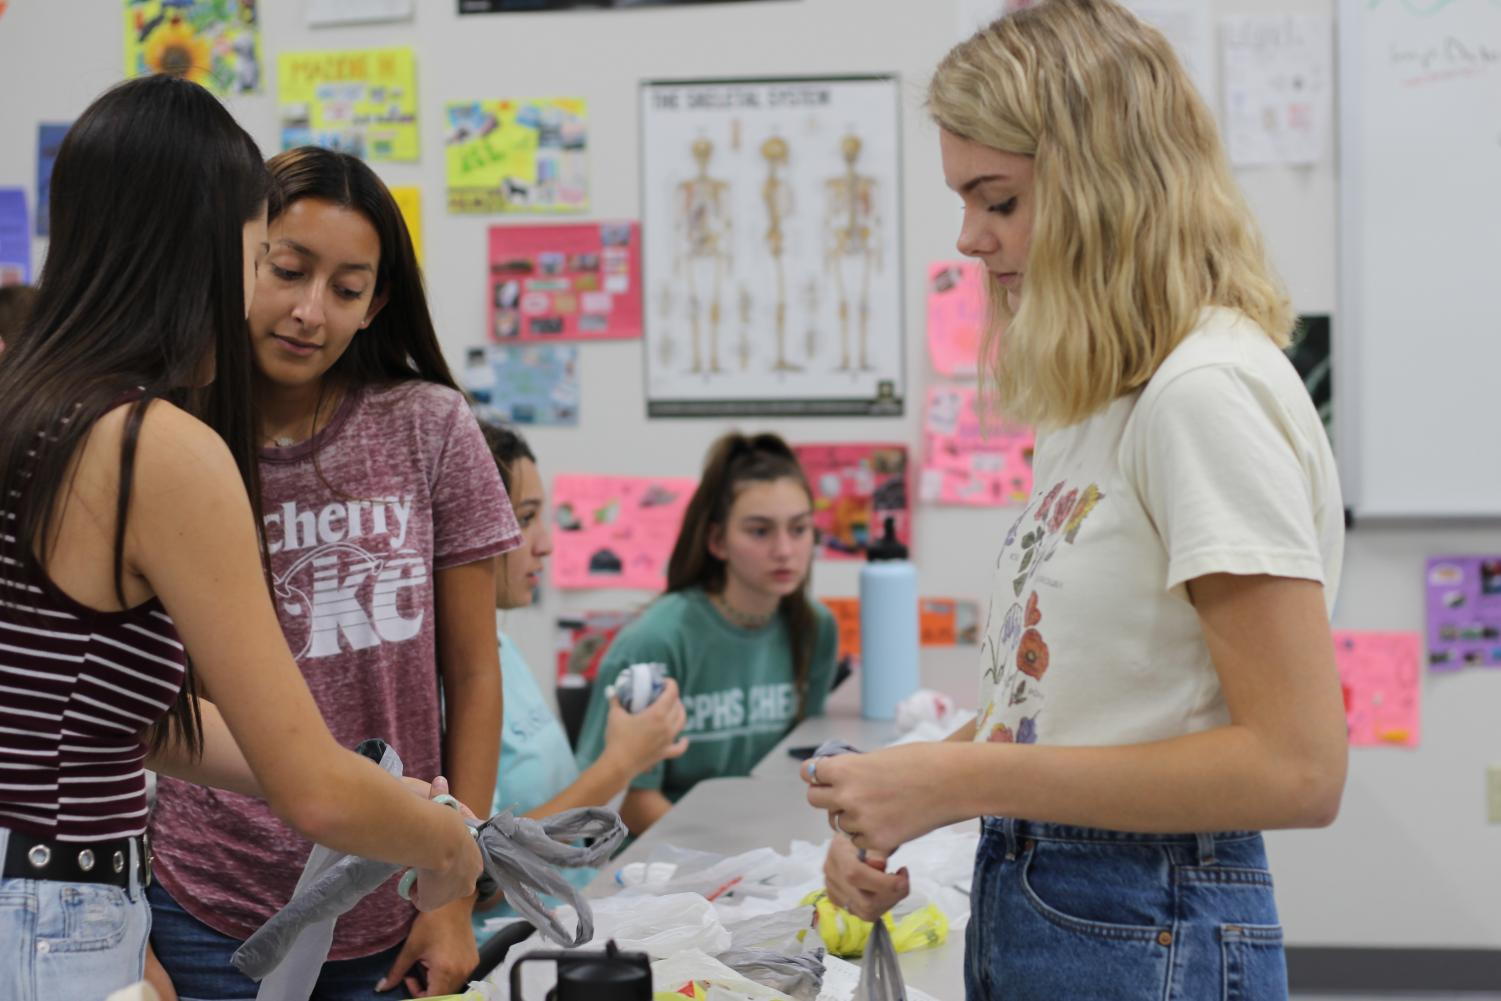 """Timberwolves for the Environment members work on converting plastic bags to mats and pillows. These newly converted mats and pillows will be donated to the homeless. """"You really feel good when you are making these things for other people because we get to deliver the mats and when we deliver it to the homeless and they are really appreciative of it,"""" junior club officer Savanna Laughlin said. """"It's really eye opening like, 'wow we have it really good' and just spending one hour after school can make such a difference in a person's life."""""""